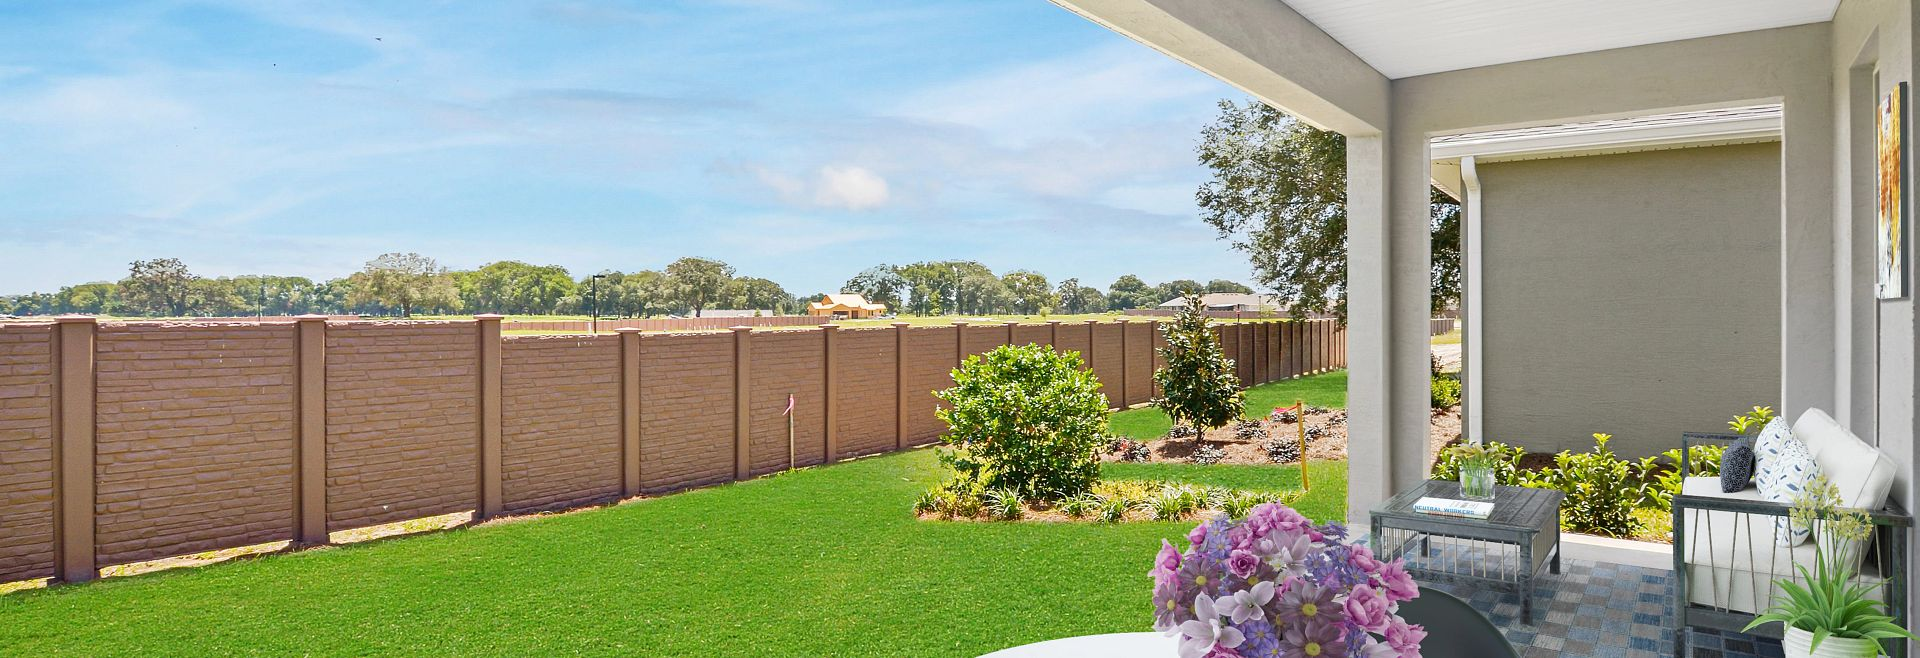 Trilogy at Ocala Preserve Quick Move-In Home Virtually Staged Covered Lanai